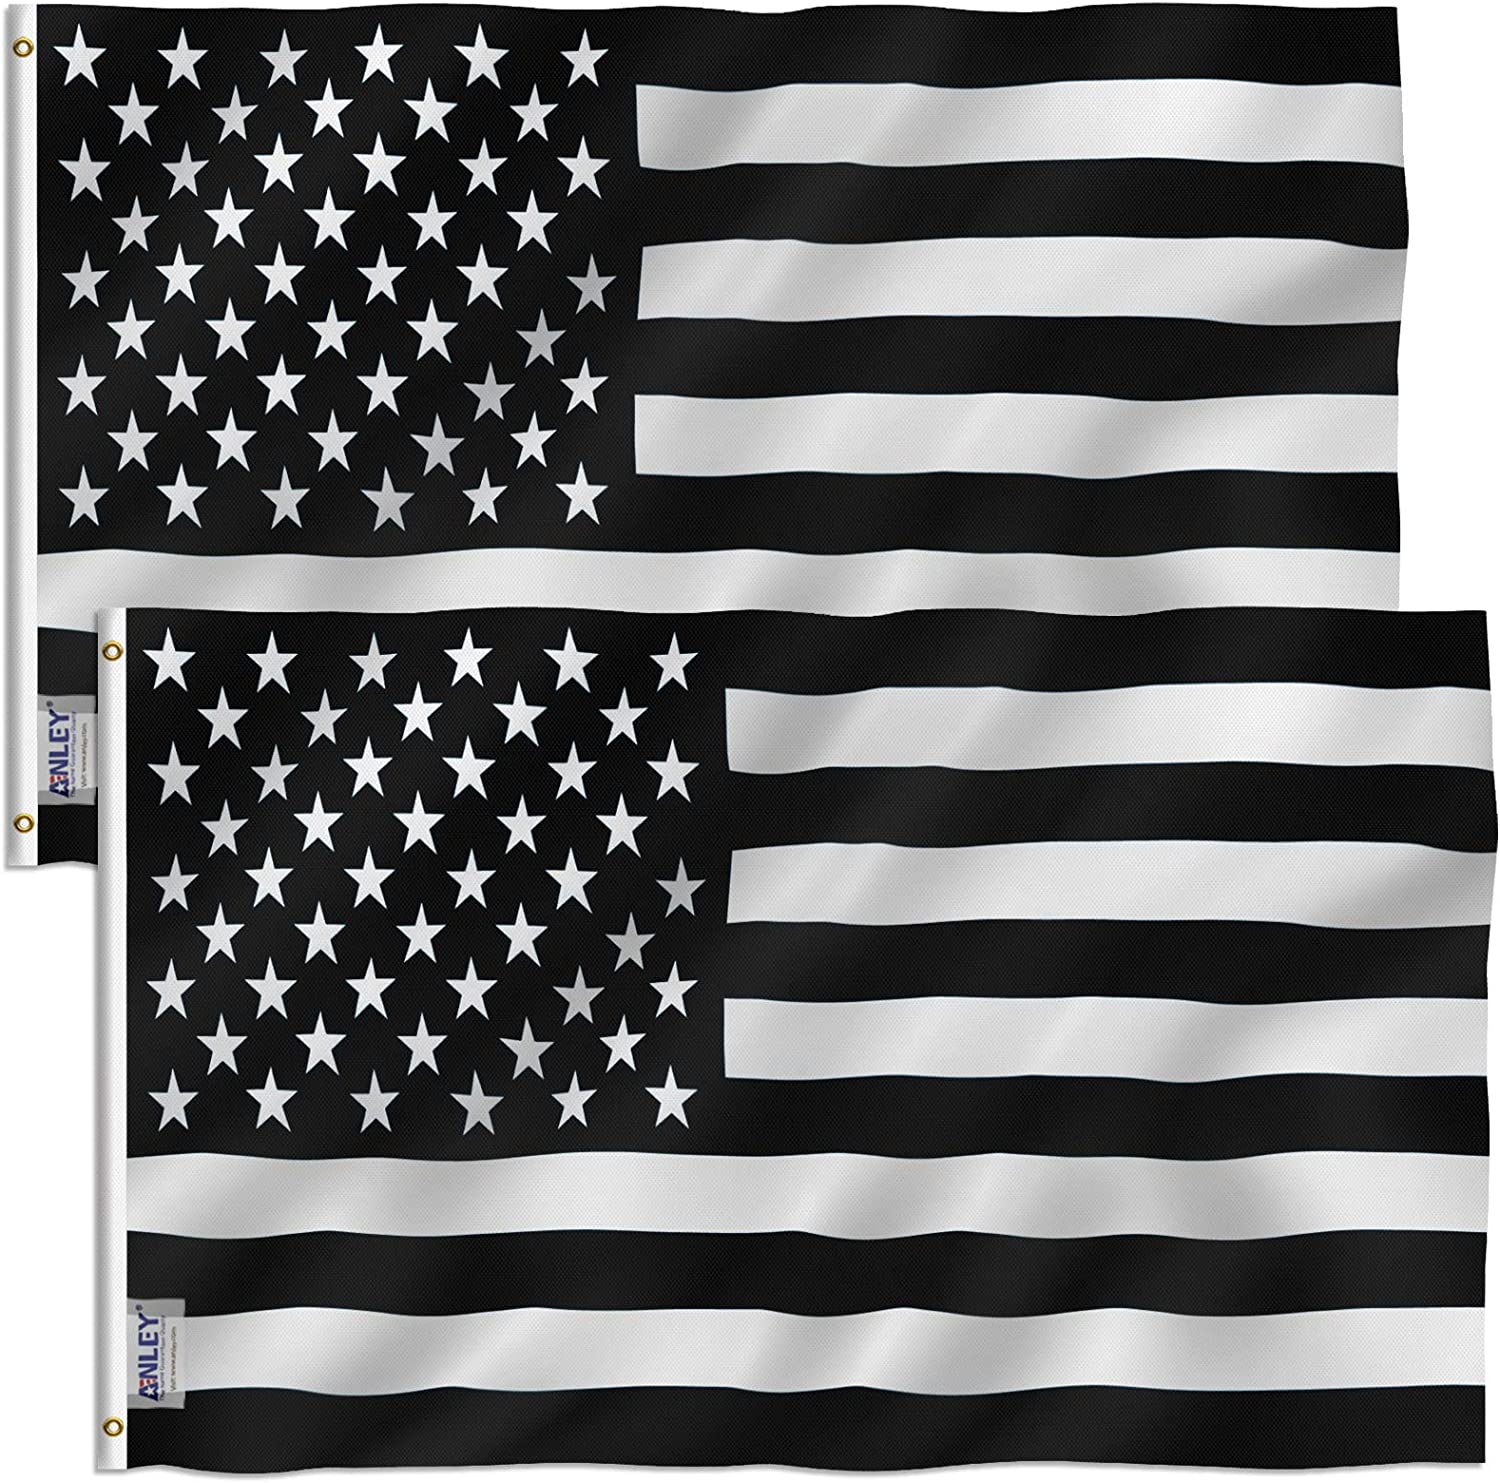 Anley Pack of 2 Fly Breeze 3x5 Foot Black and White American Flag - Vivid Color and Fade Proof - Canvas Header and Double Stitched - Recession USA Flags Polyester with Brass Grommets 3 X 5 Ft